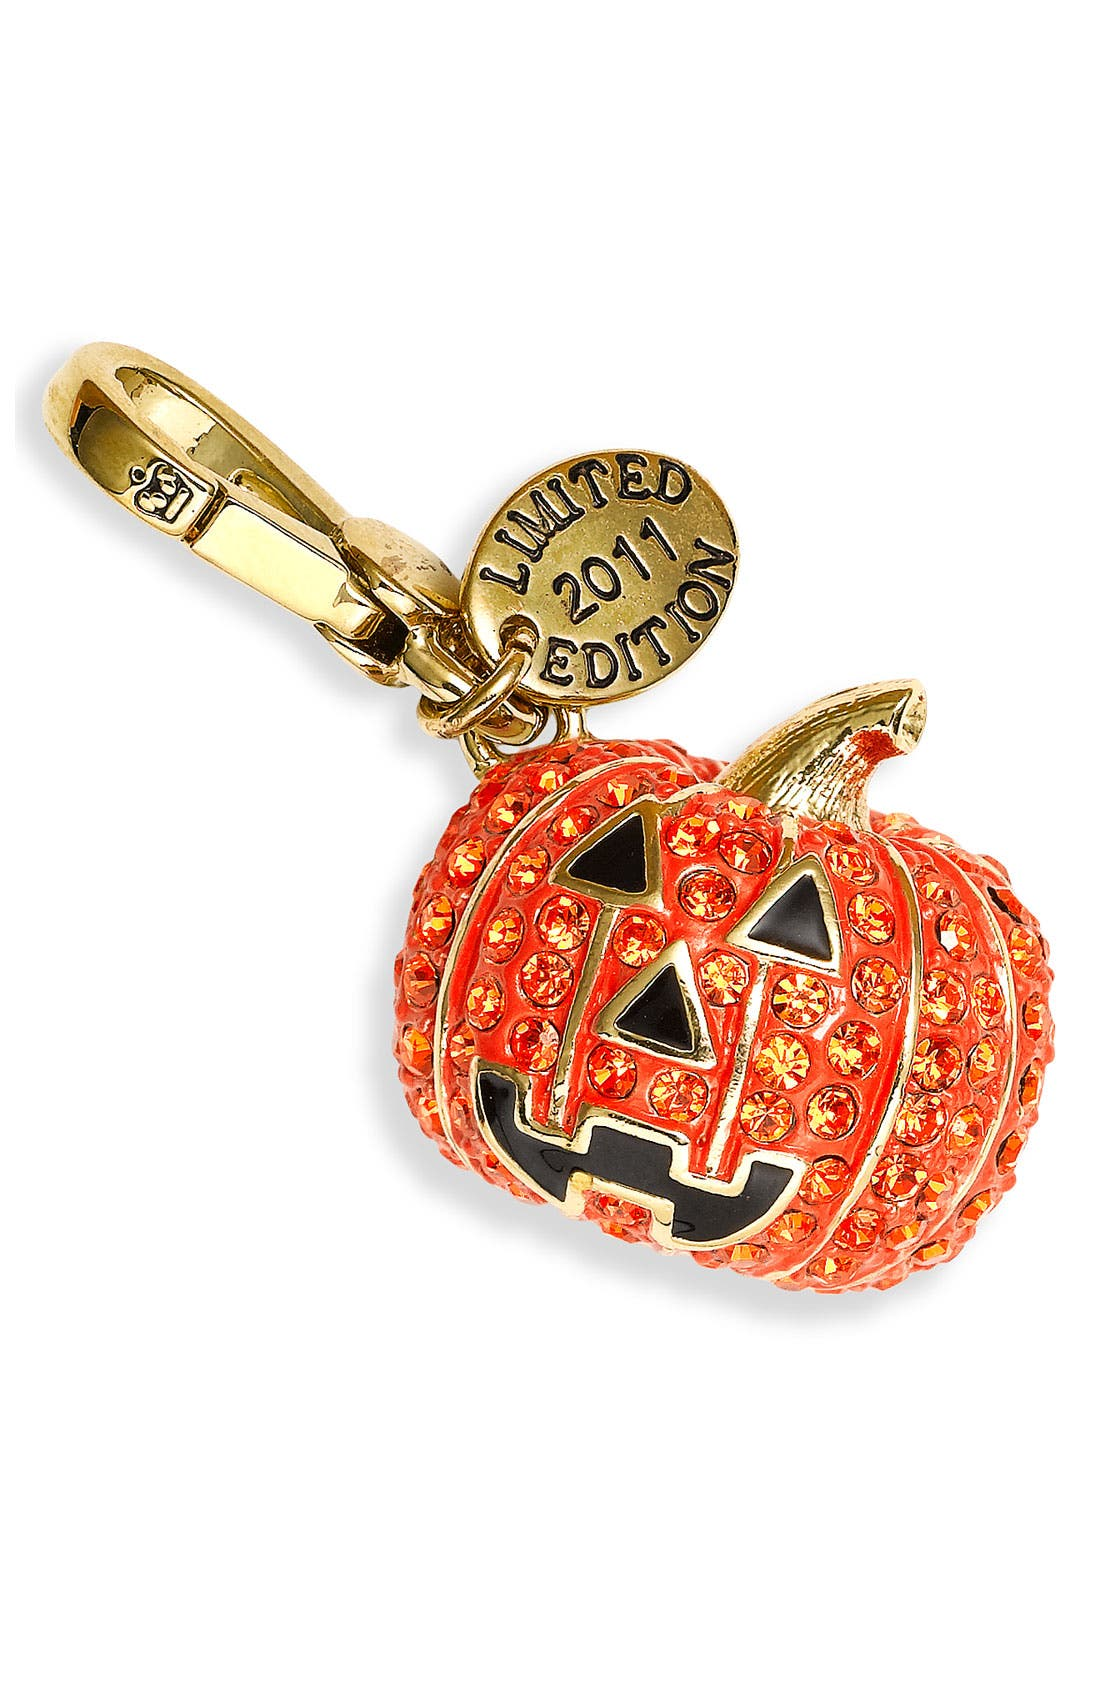 Main Image - Juicy Couture Pumpkin Charm (Limited Edition)